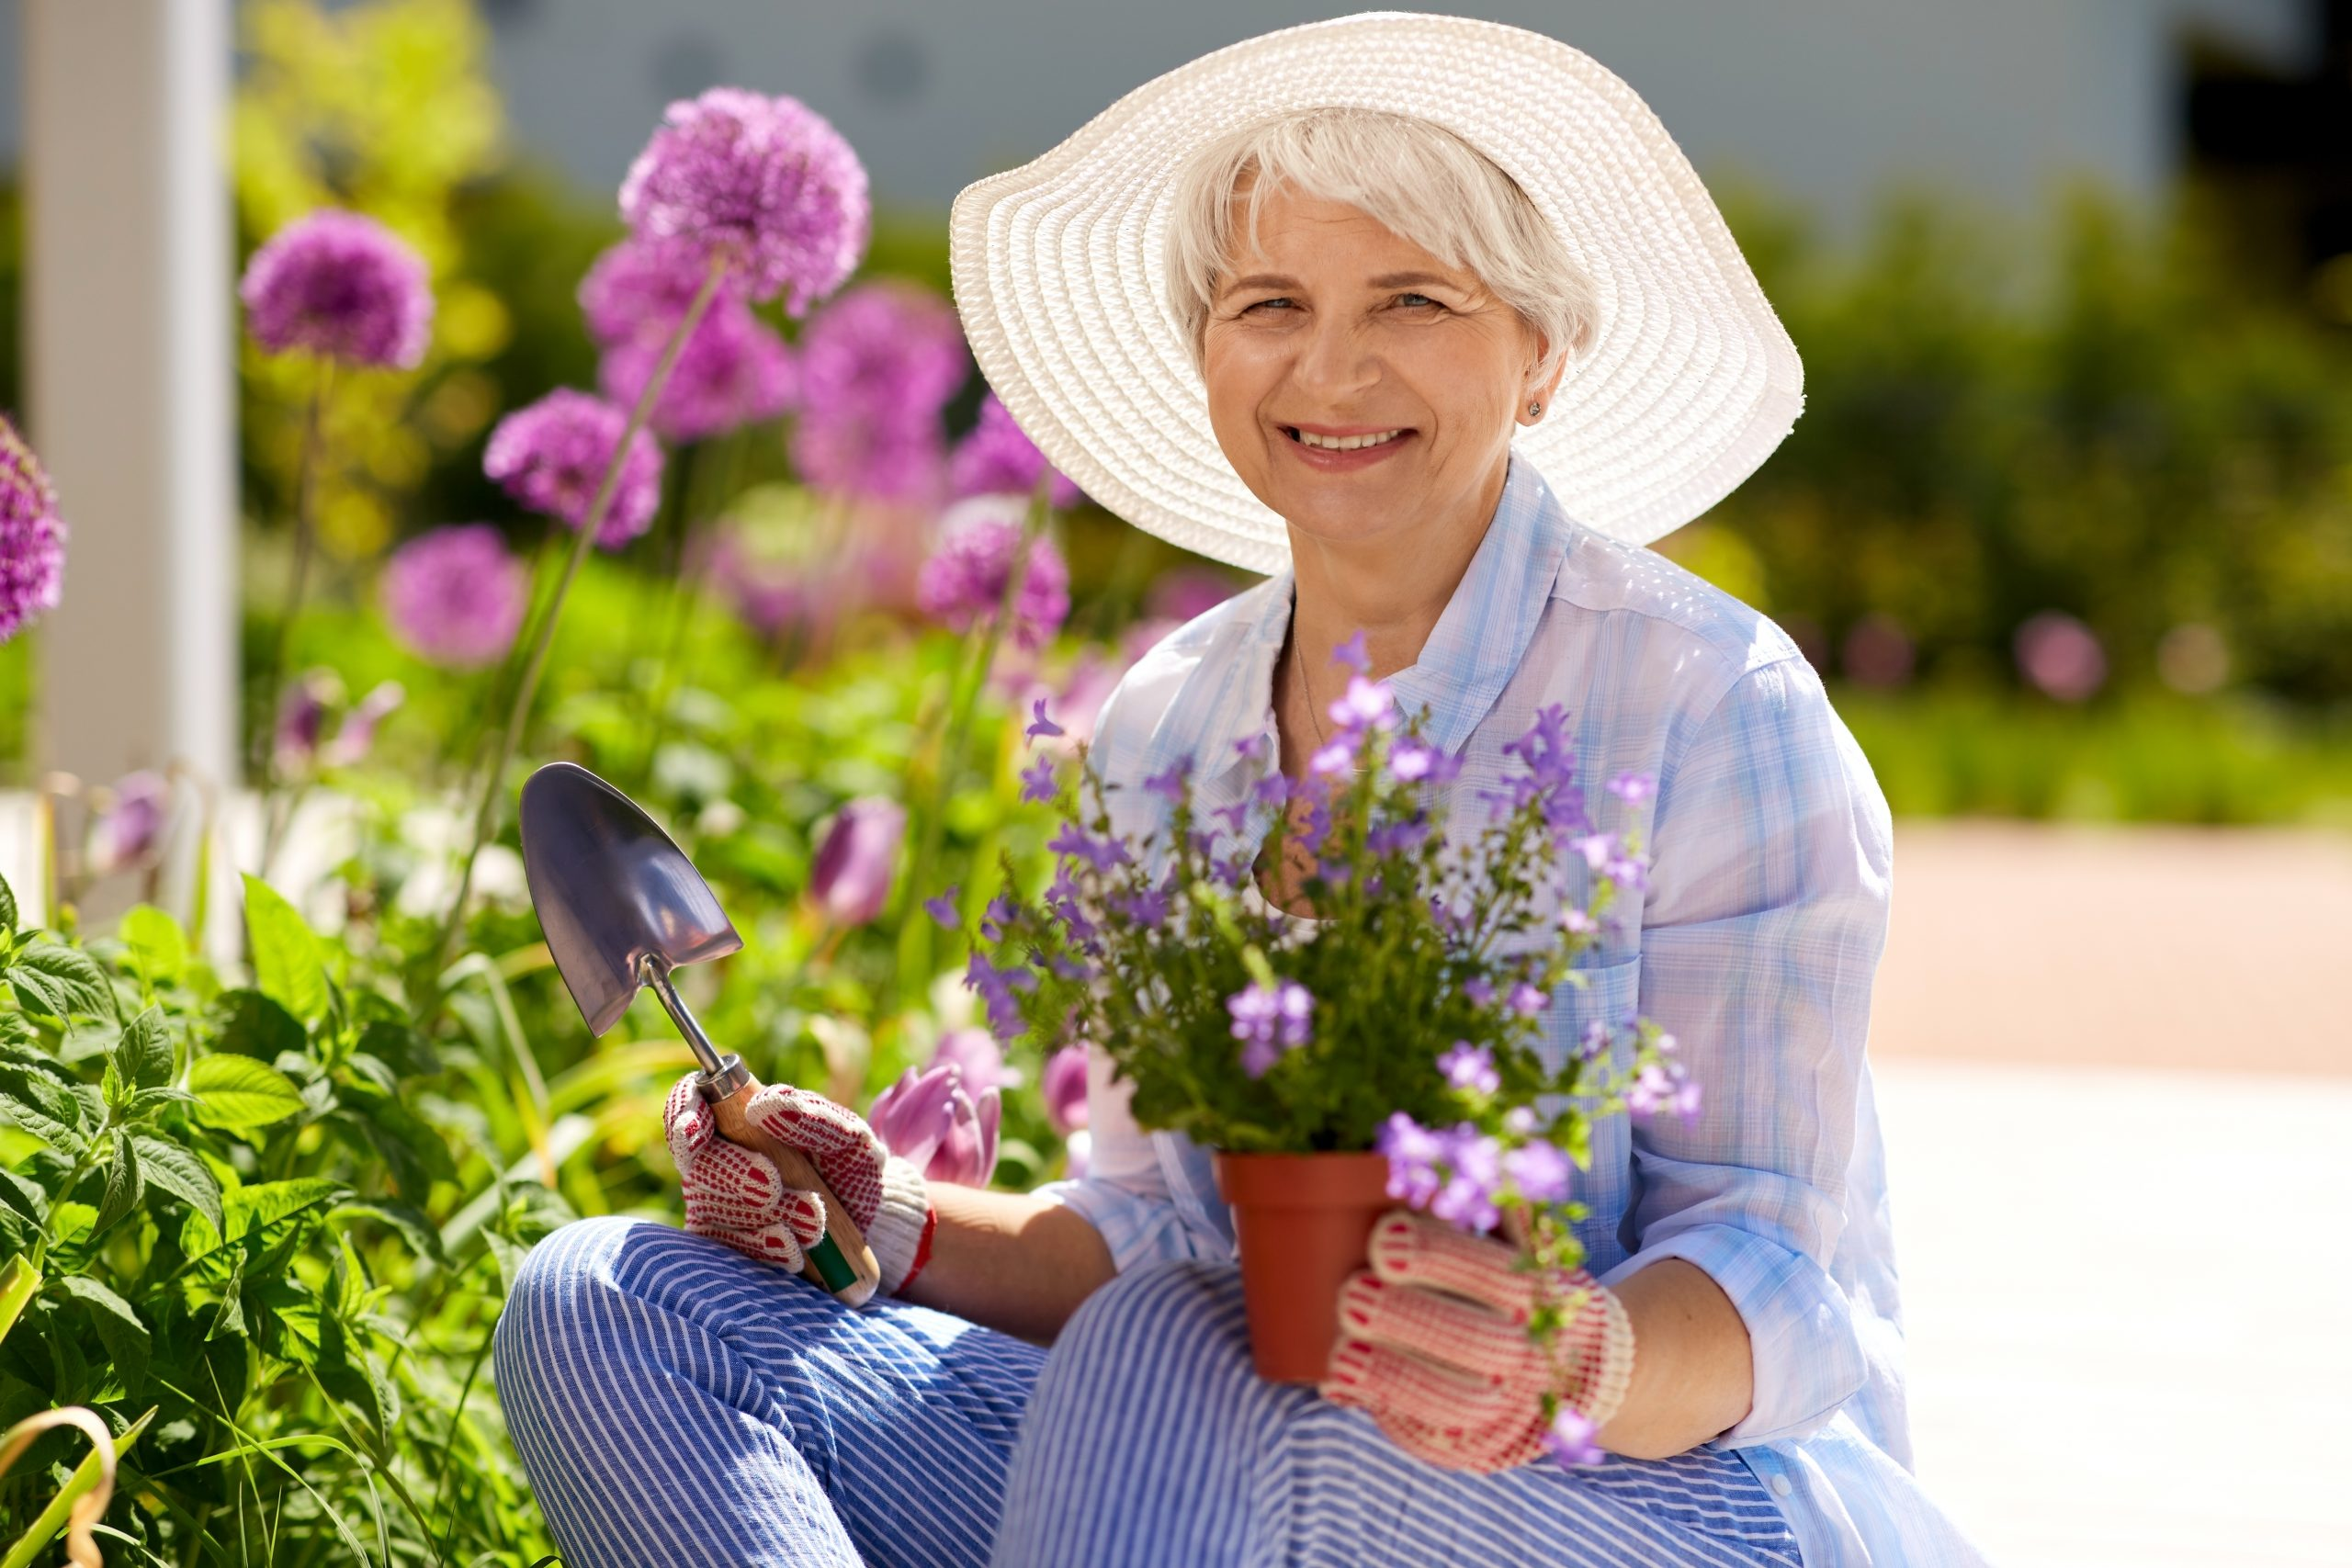 These Are the 7 Ways Seniors Can Stay Cool This Summer